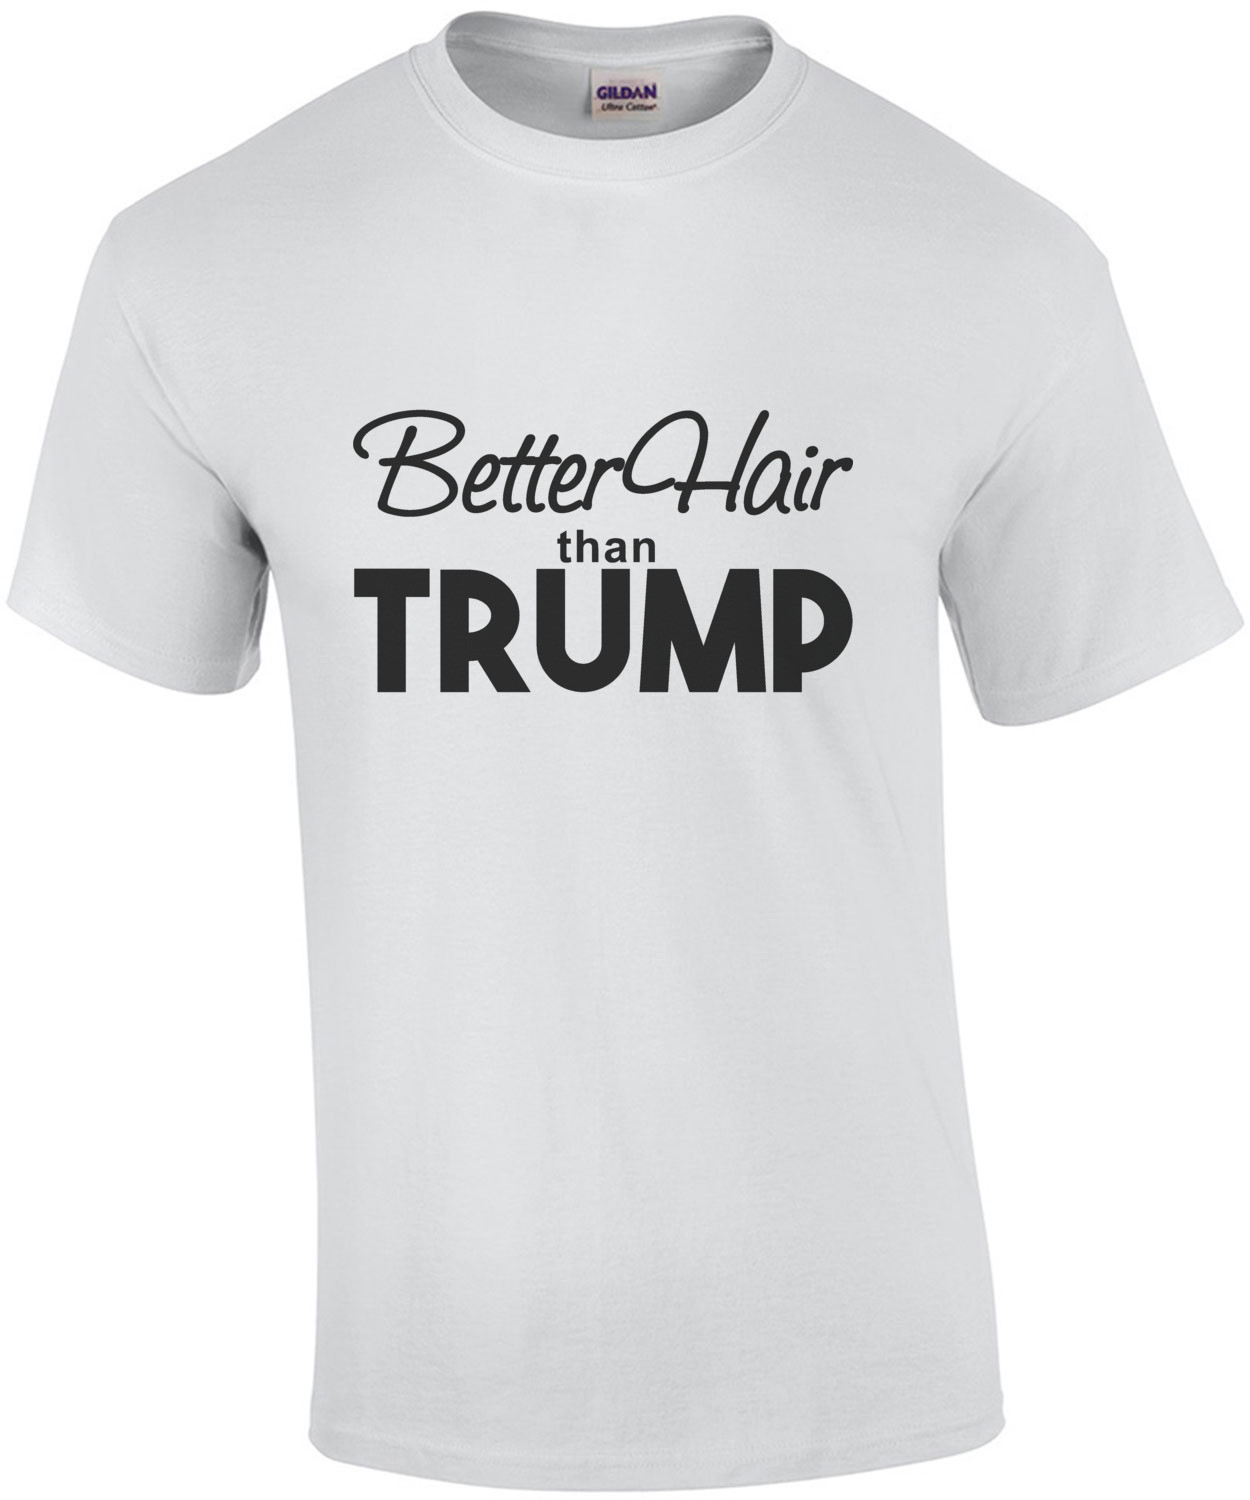 Better hair than Trump - Donald Trump T-Shirt